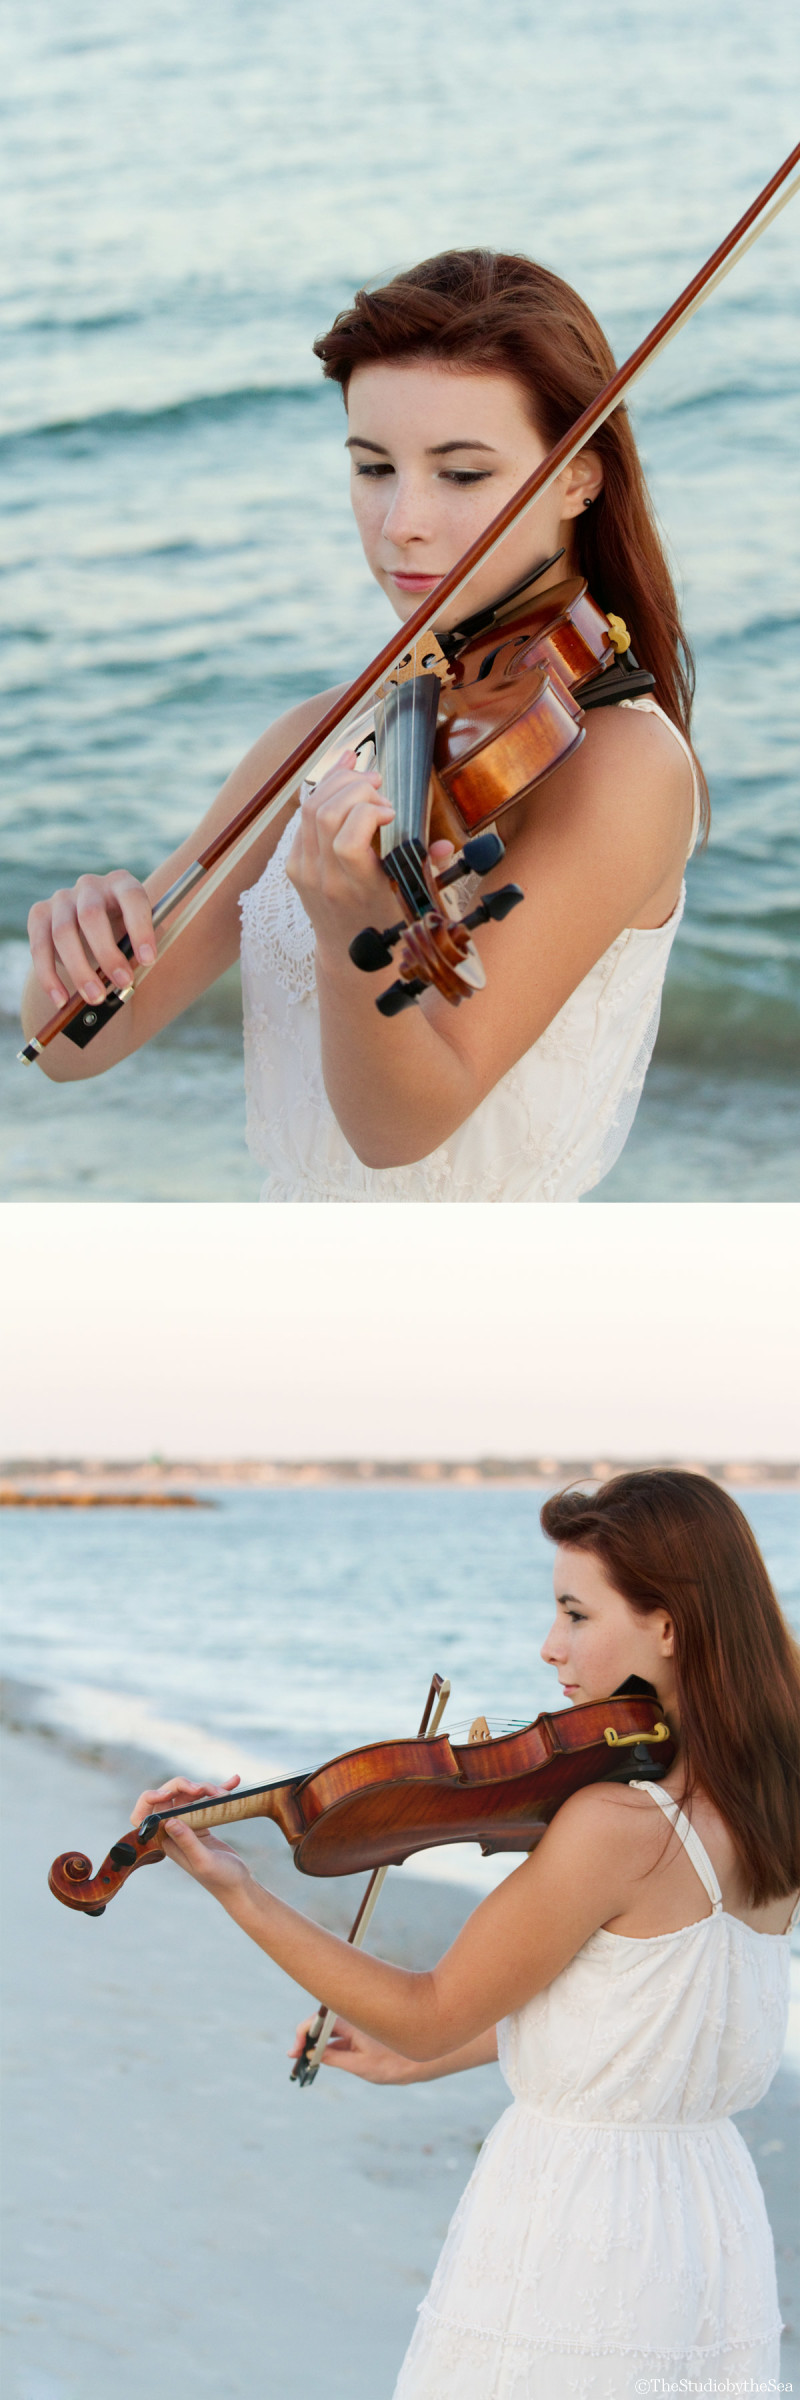 Senior girl playing violin by the ocean